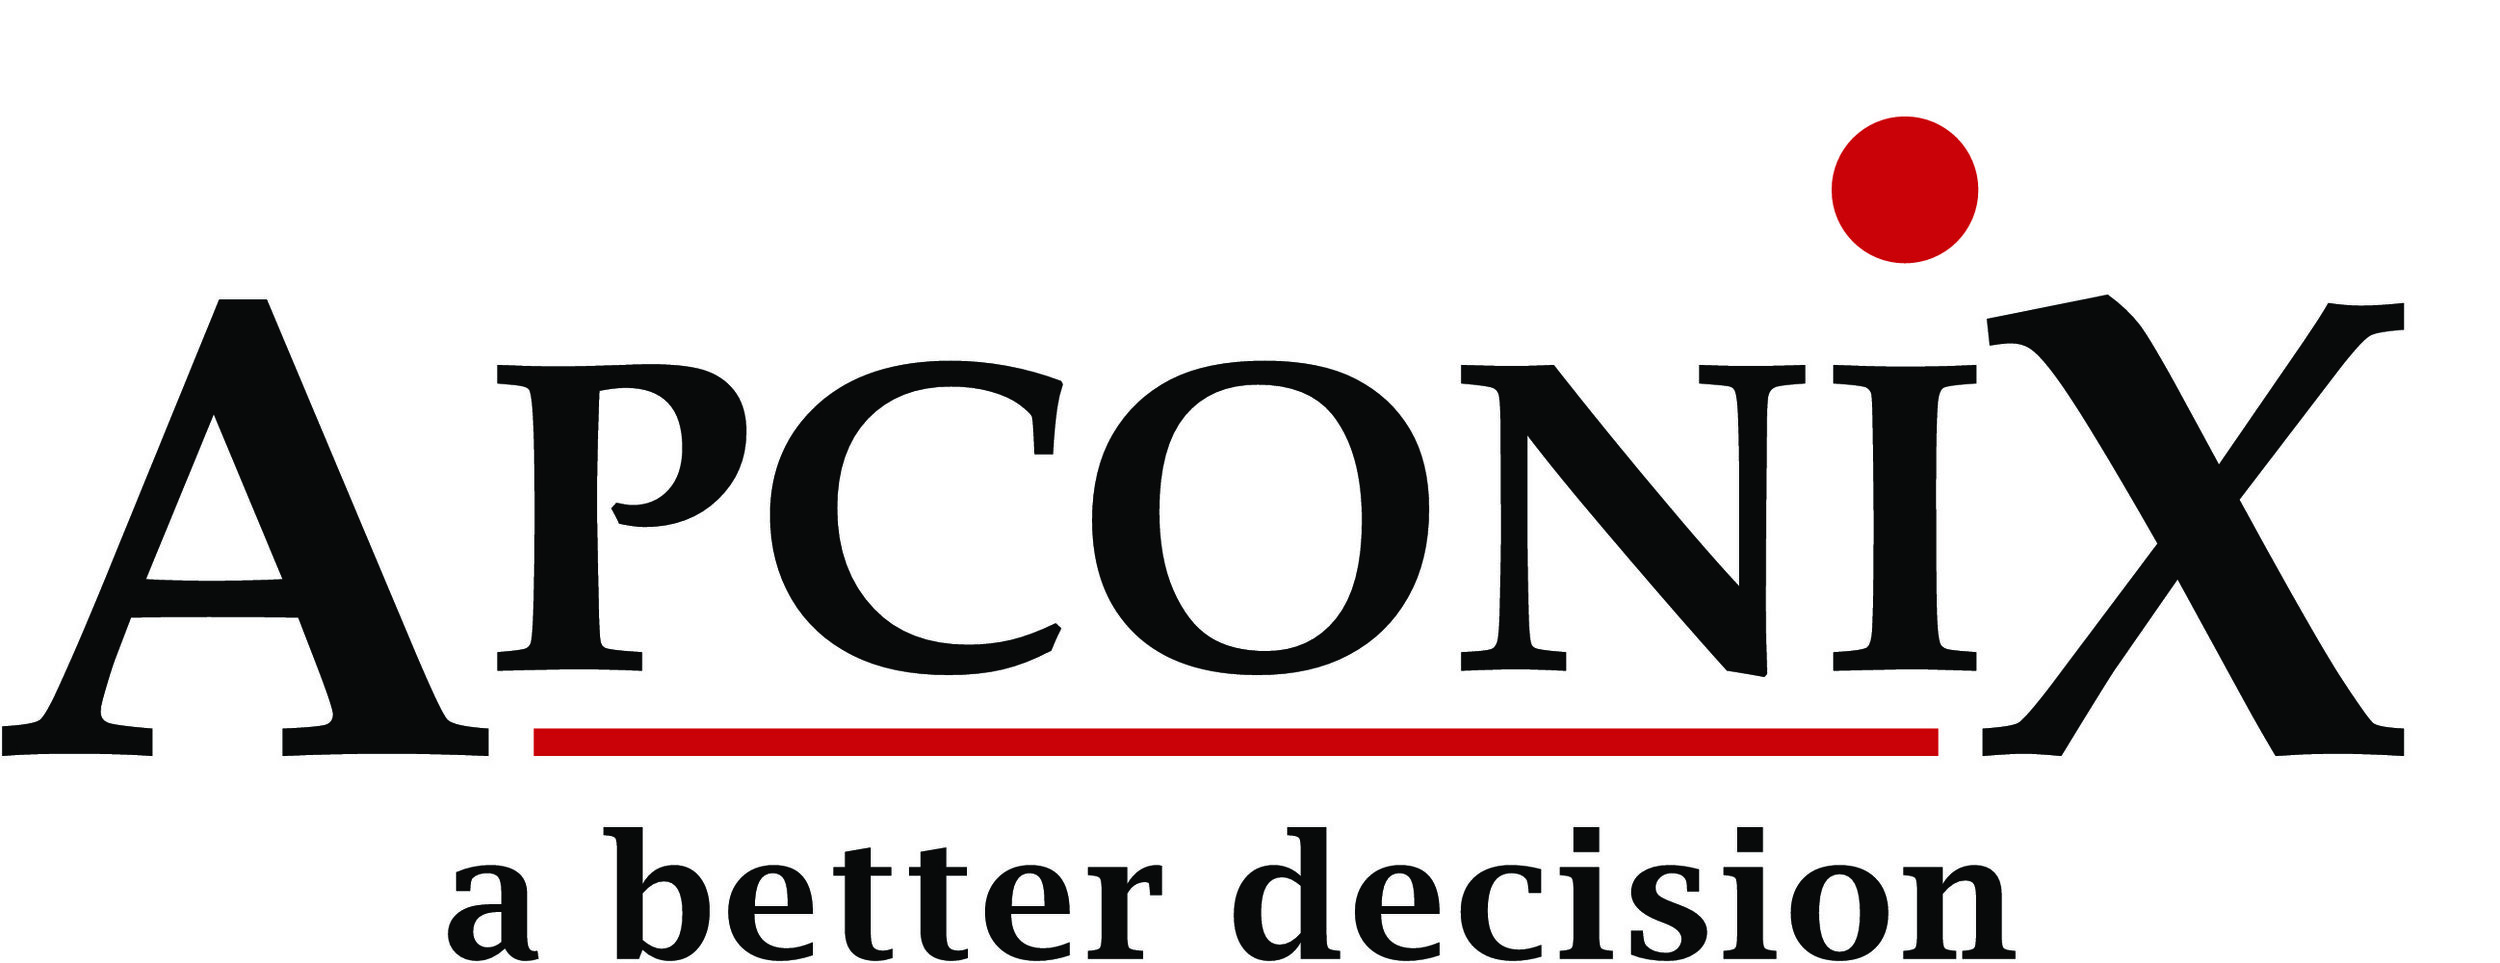 APPROVED APCONIX LOGO 2017 (1).jpg